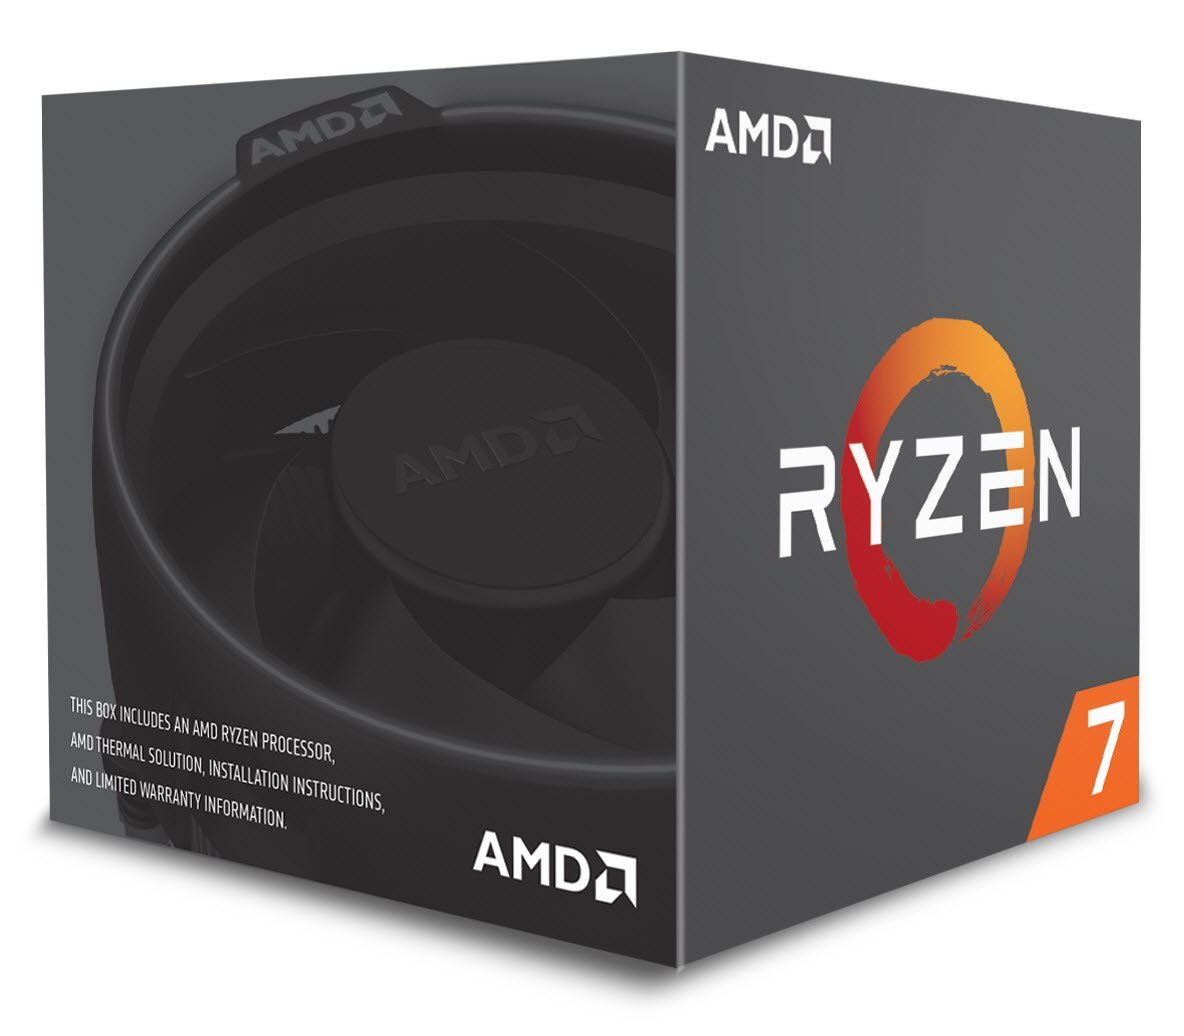 Cpu amd ryzen 7 2700x with wraith prism cooler 105w 4.35ghz 20mb am4 box